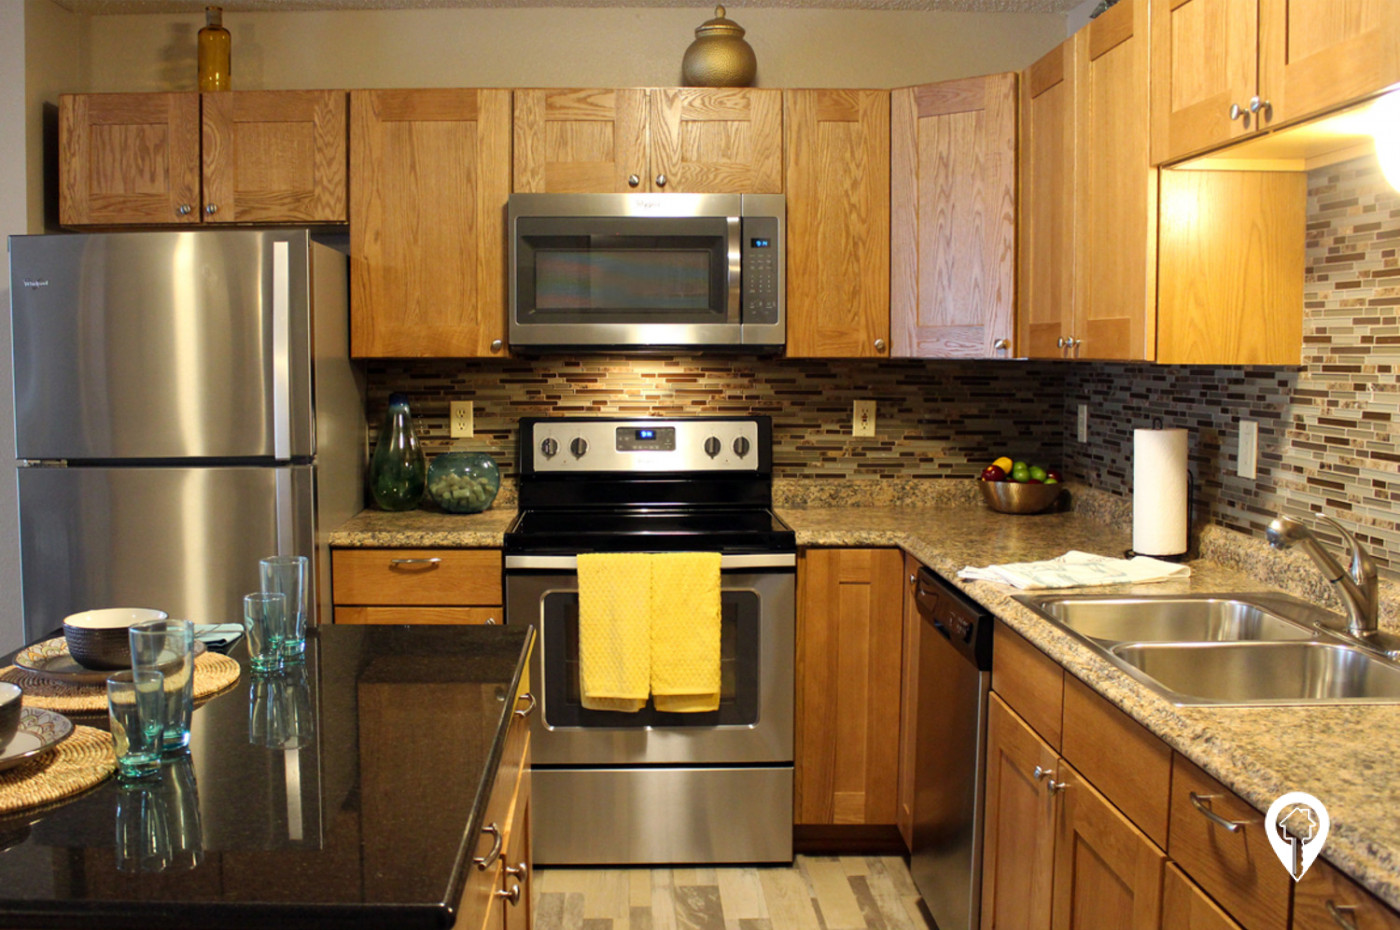 South-Pointe-Apartment-Homes-Beautifully-Remodeled-Kitchens